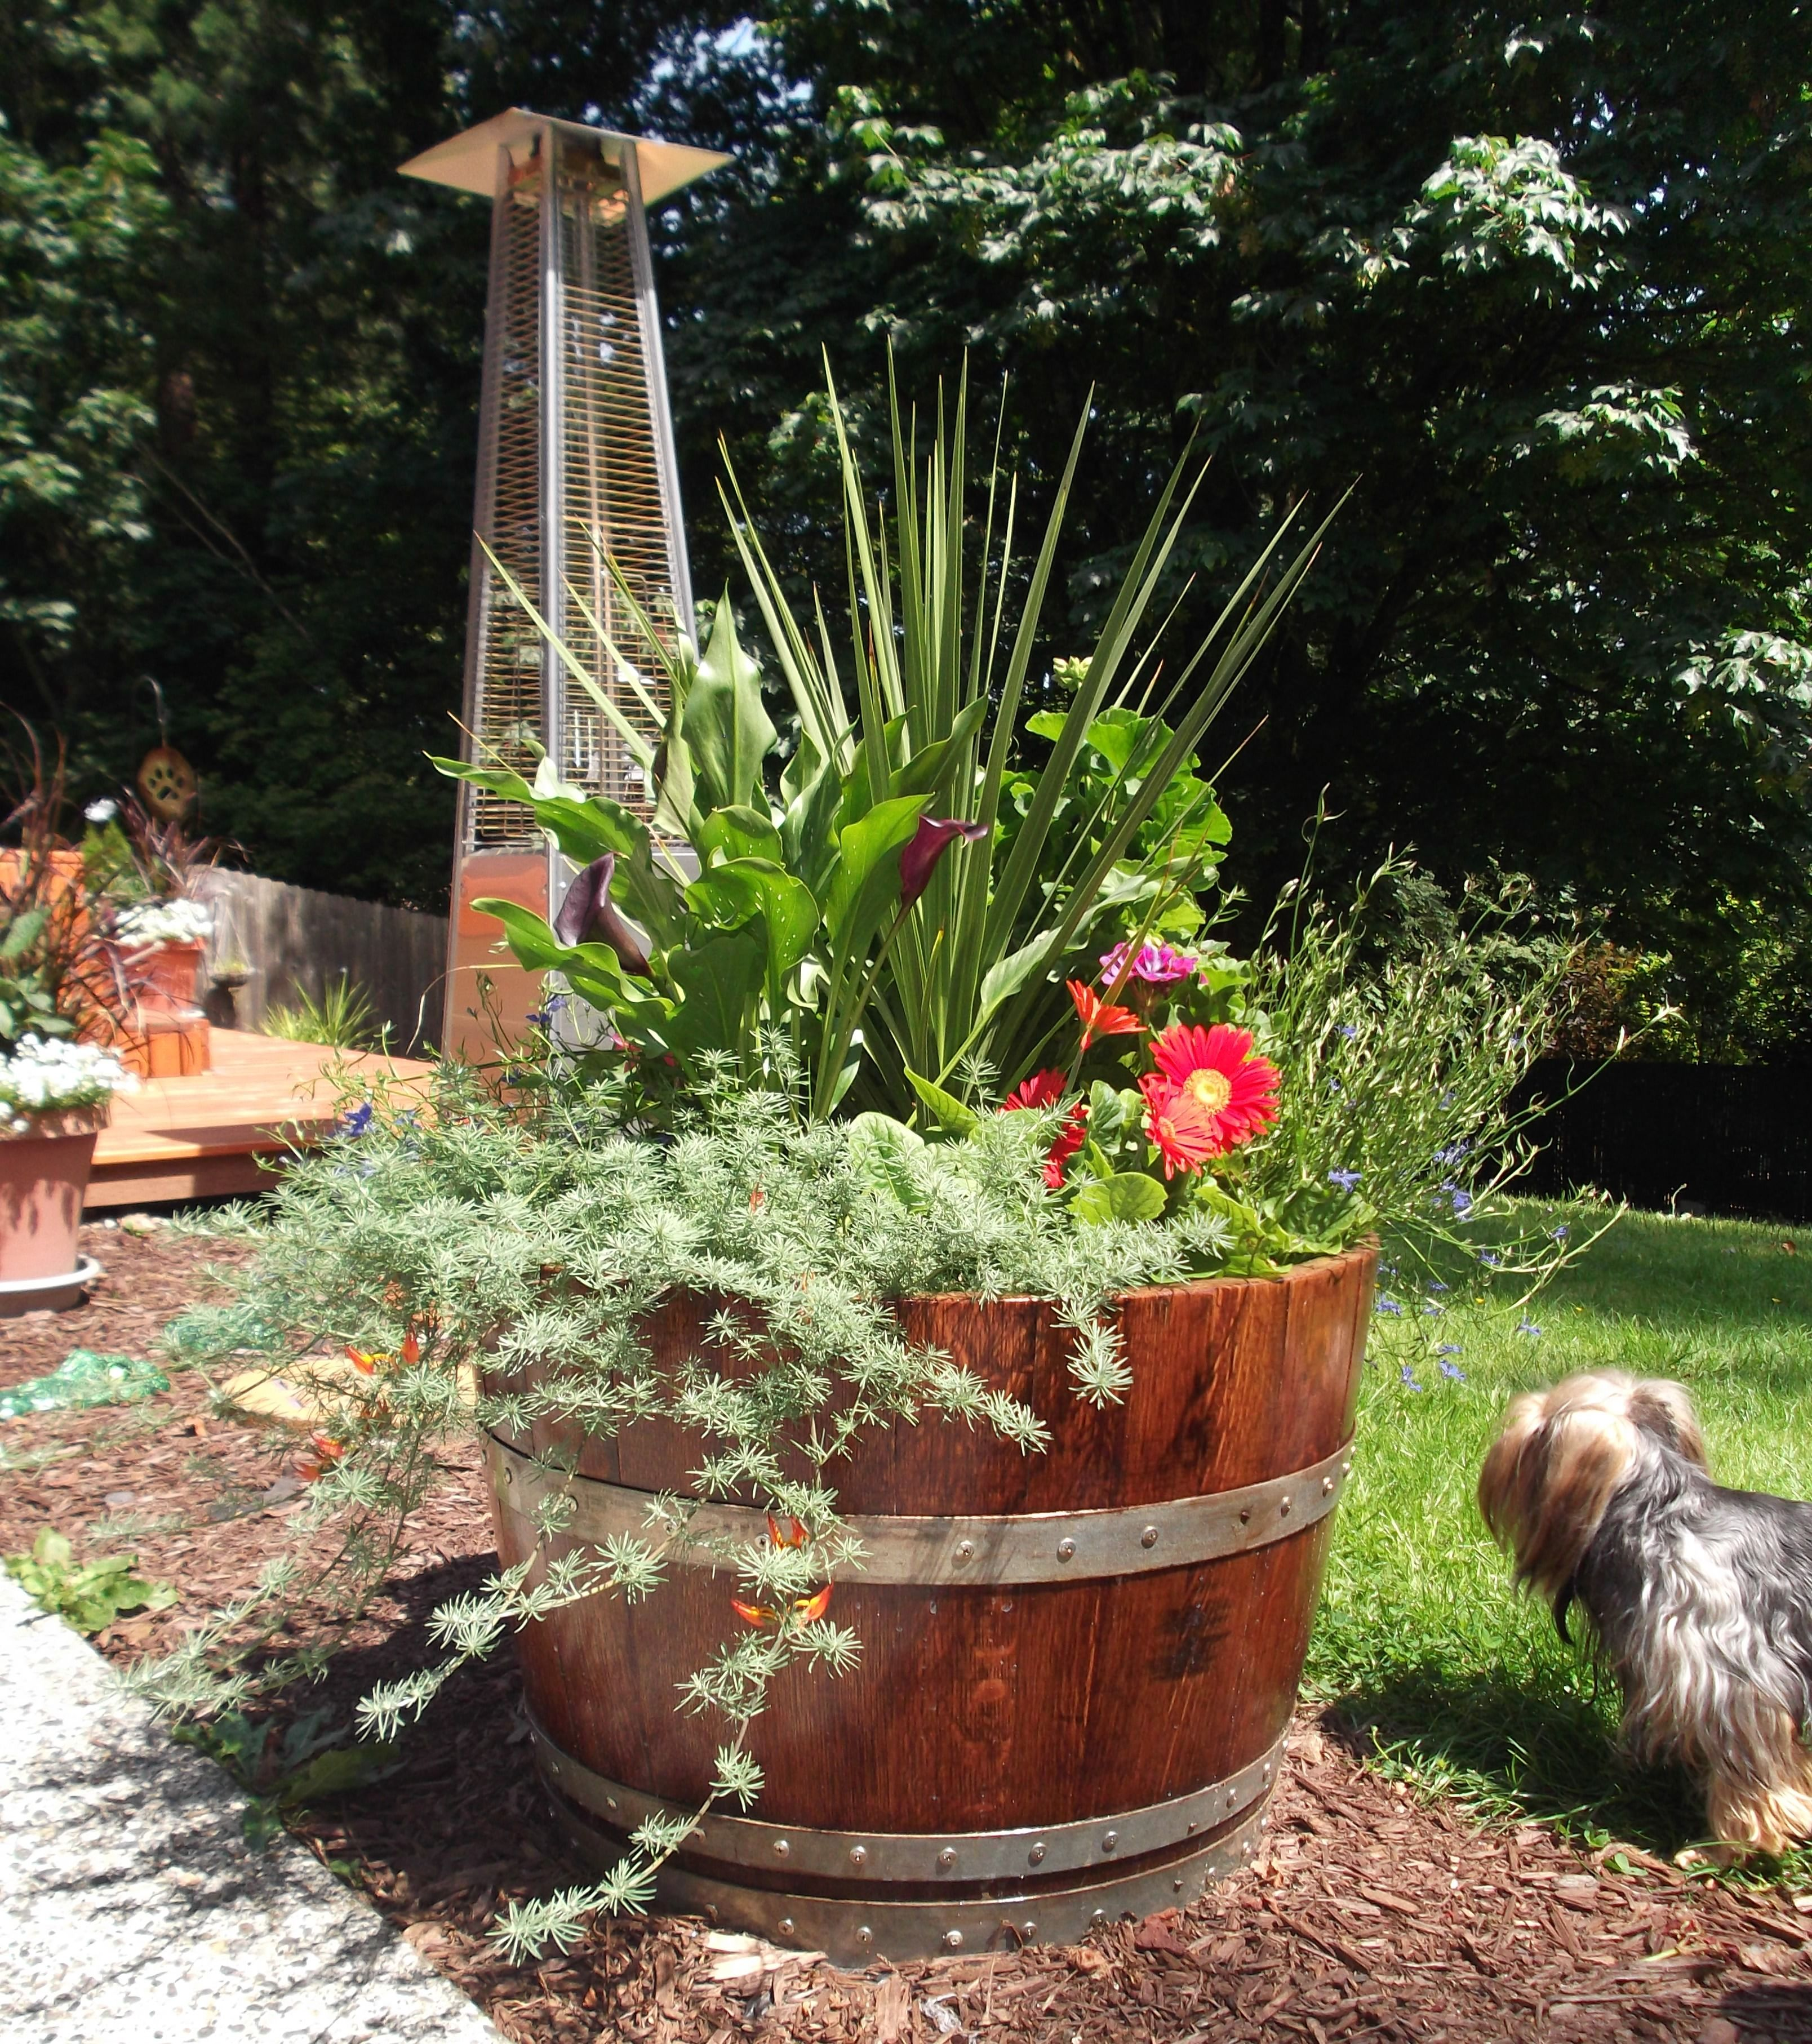 Oak Wine Barrel Flower Pots Each Stave Is Secured With A Screw To Ensure No Warping Stained And C Whiskey Barrel Planter Barrel Planter Wine Barrel Planter